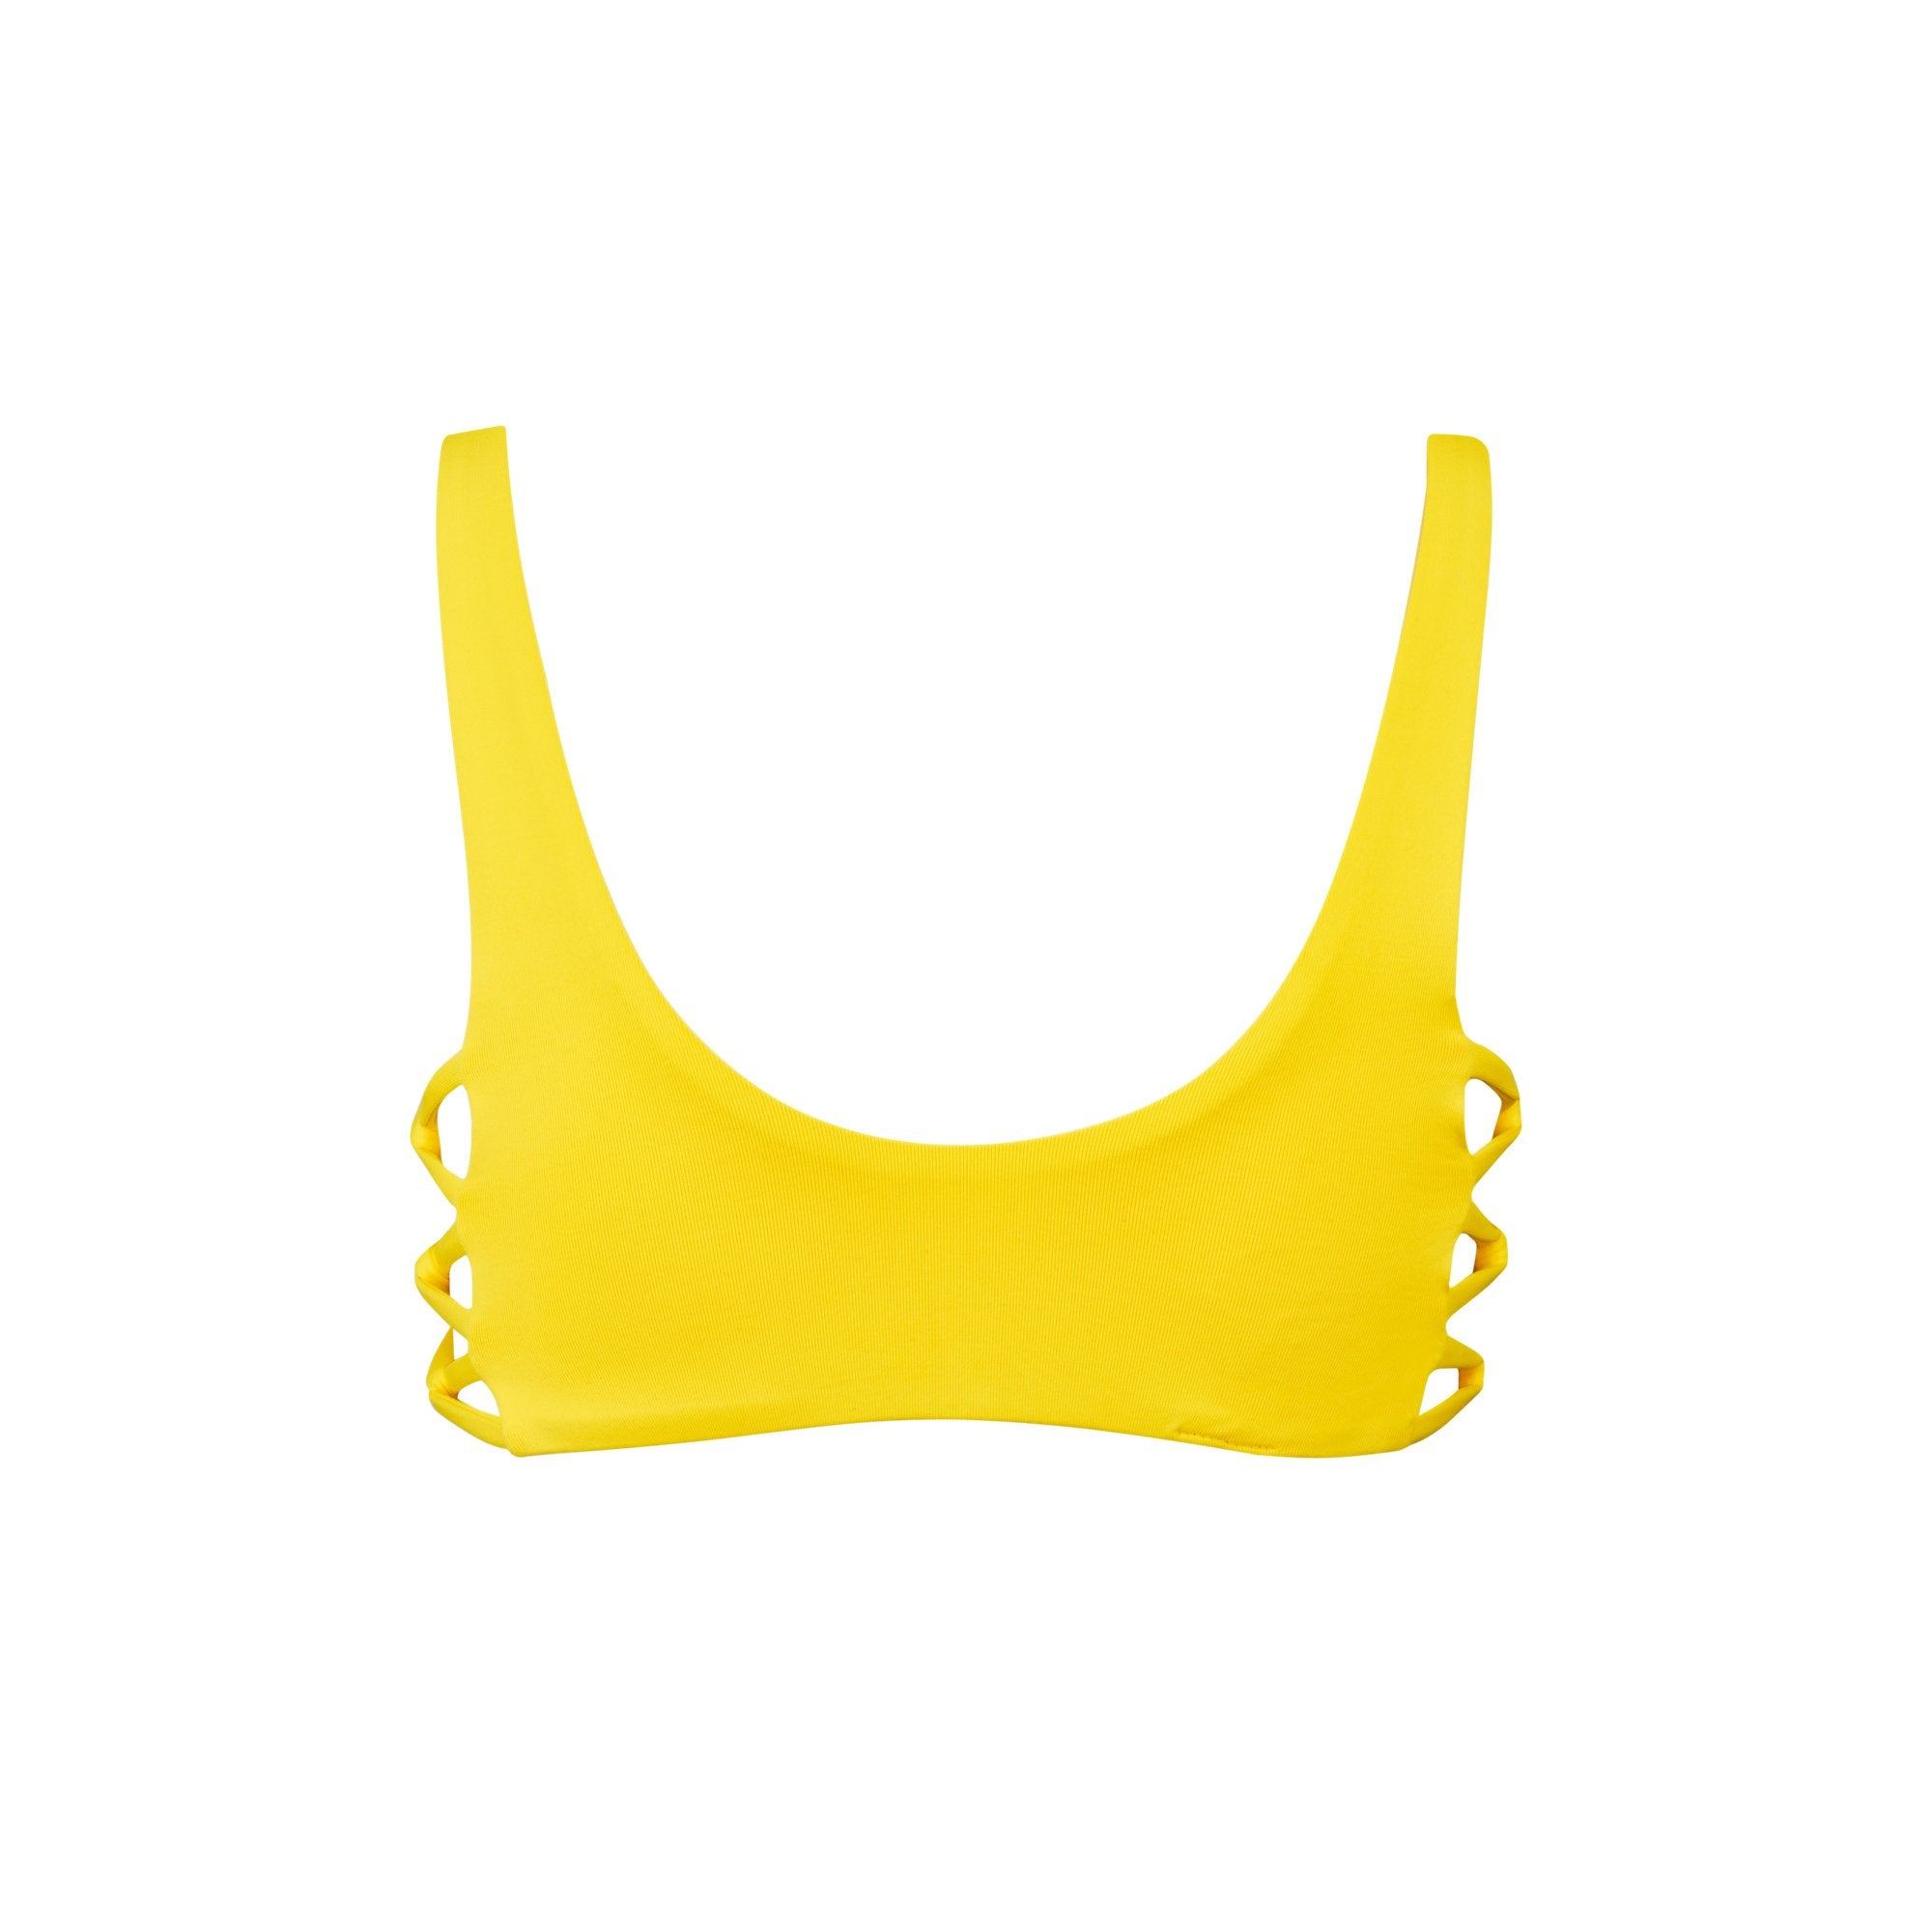 Fizz Bikini Top in Banana by Tuhkana Swimwear